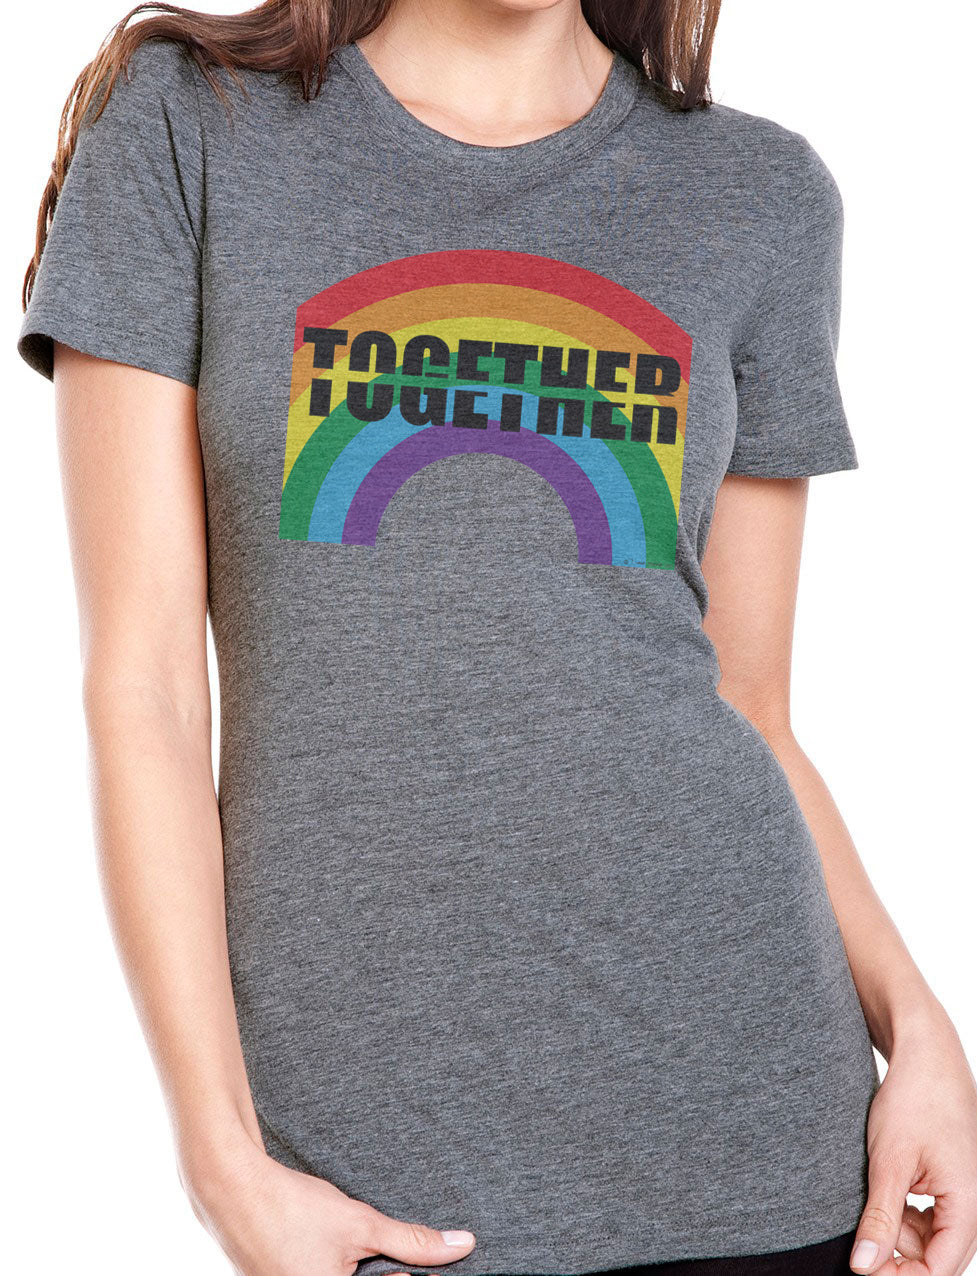 TOGETHER-APART Rainbow Grey Men's, Women's and Youth Styles. PROFITS GO TO AMERICAN RED CROSS